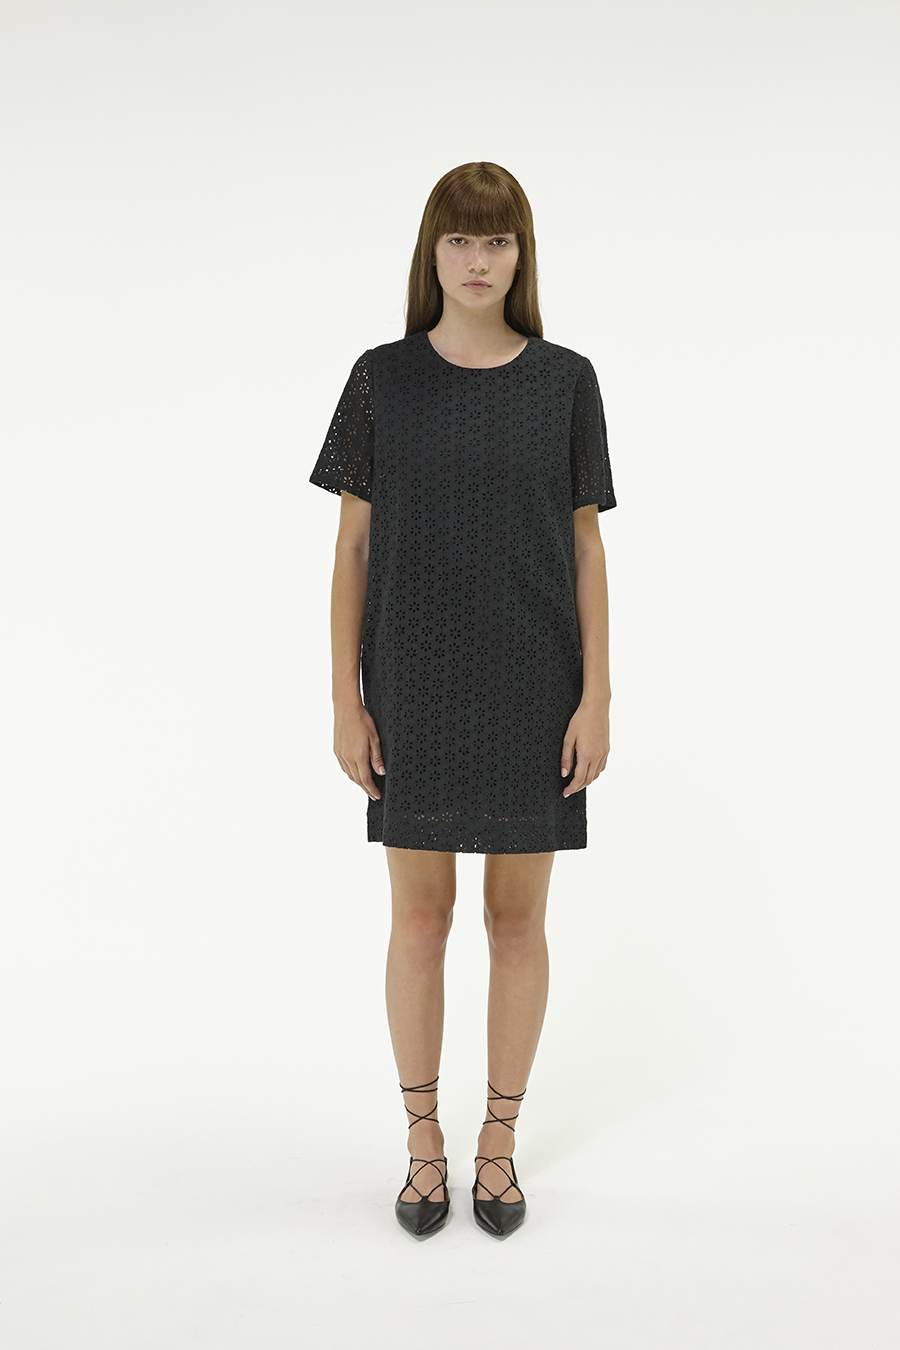 Huffer_Q3-16_W-Hope-Shell-Dress_Black-01